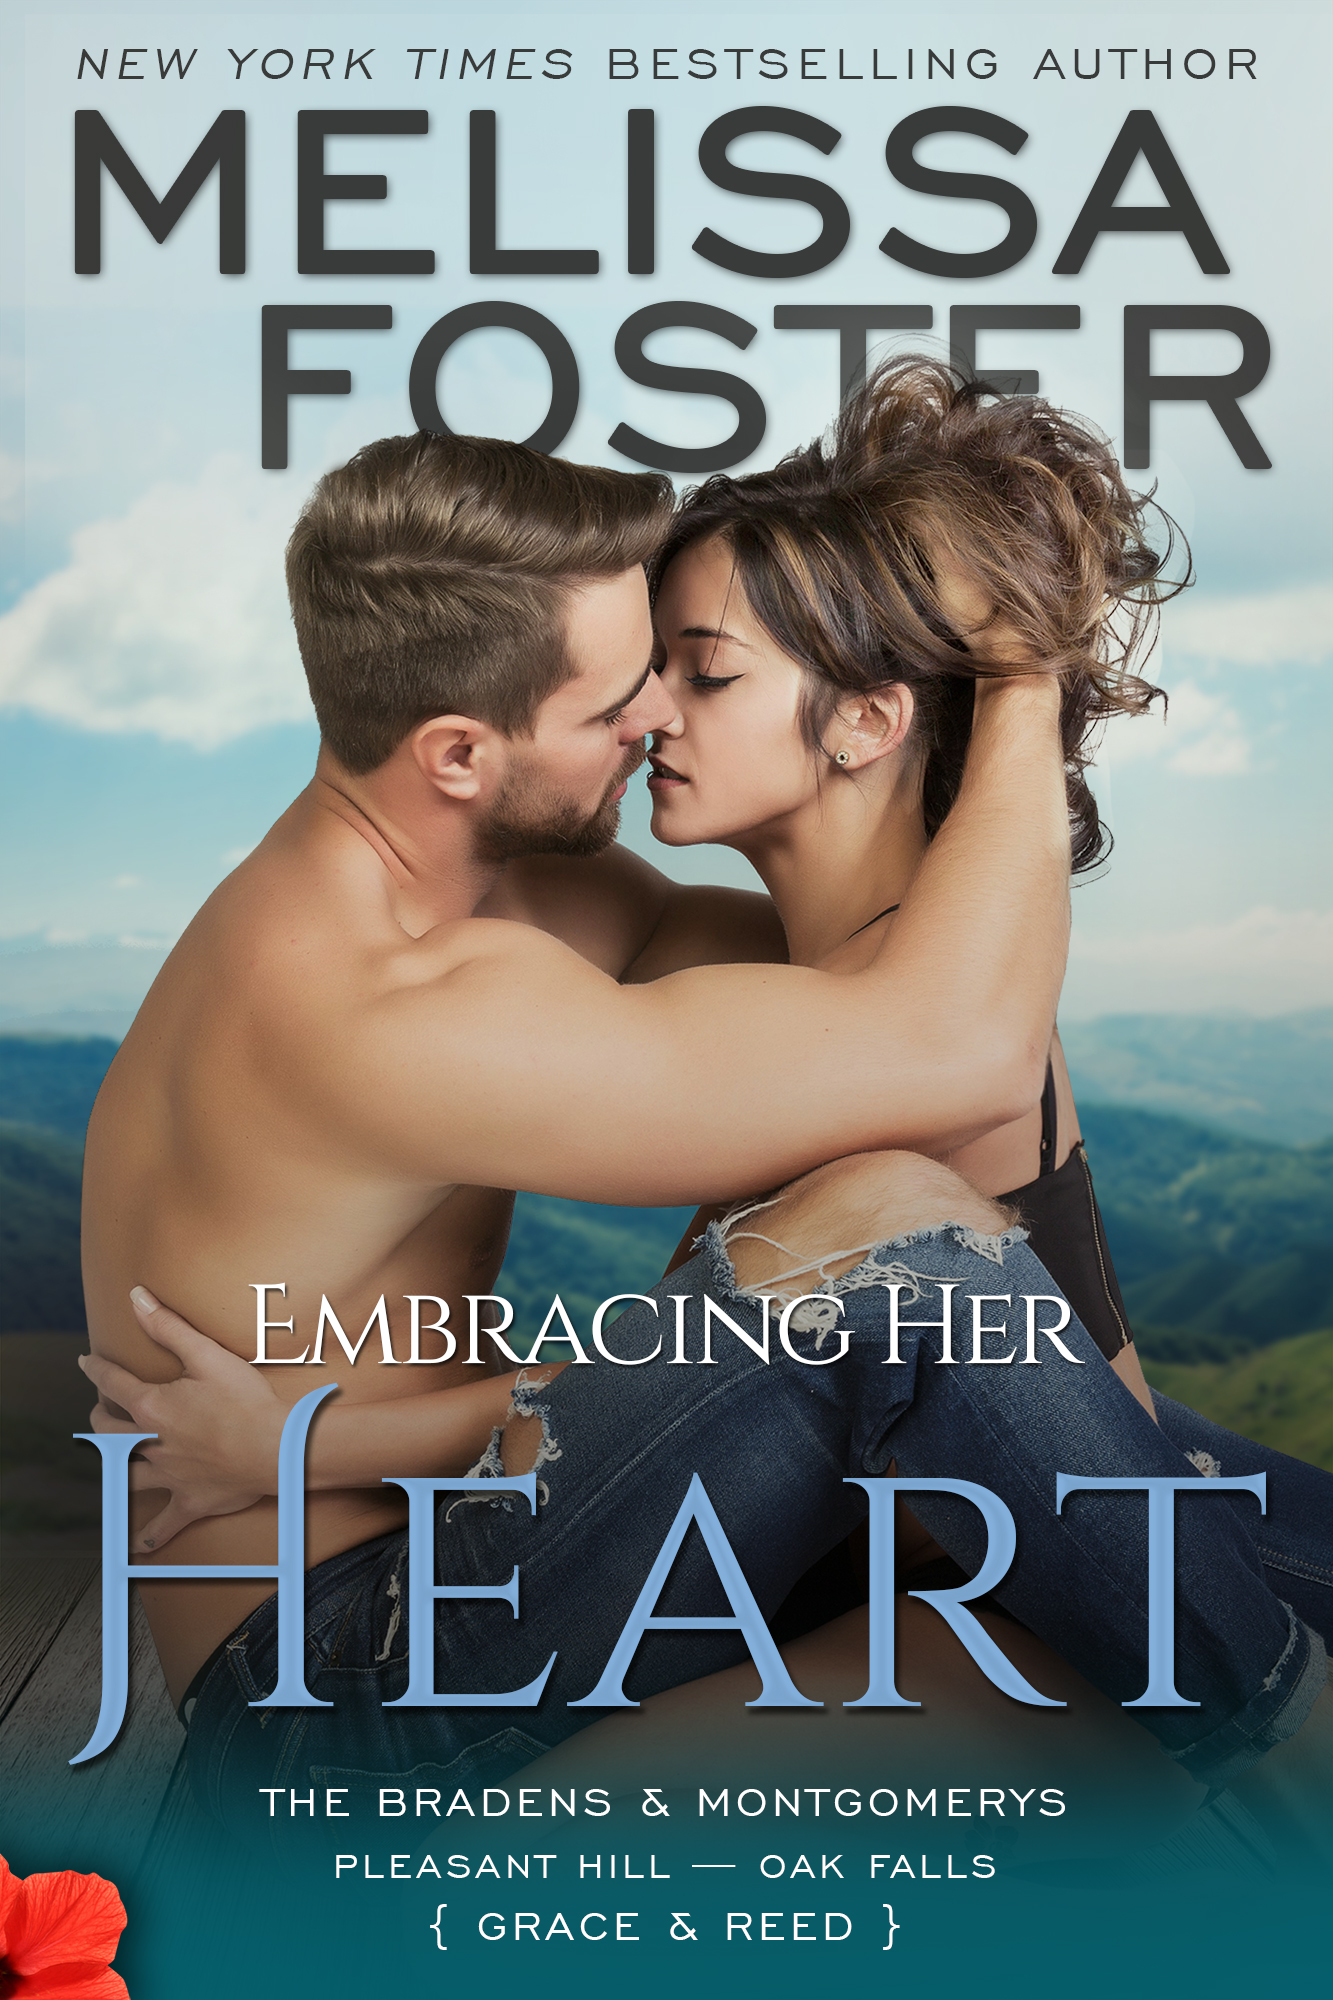 Embracing Her Heart by Melissa Foster